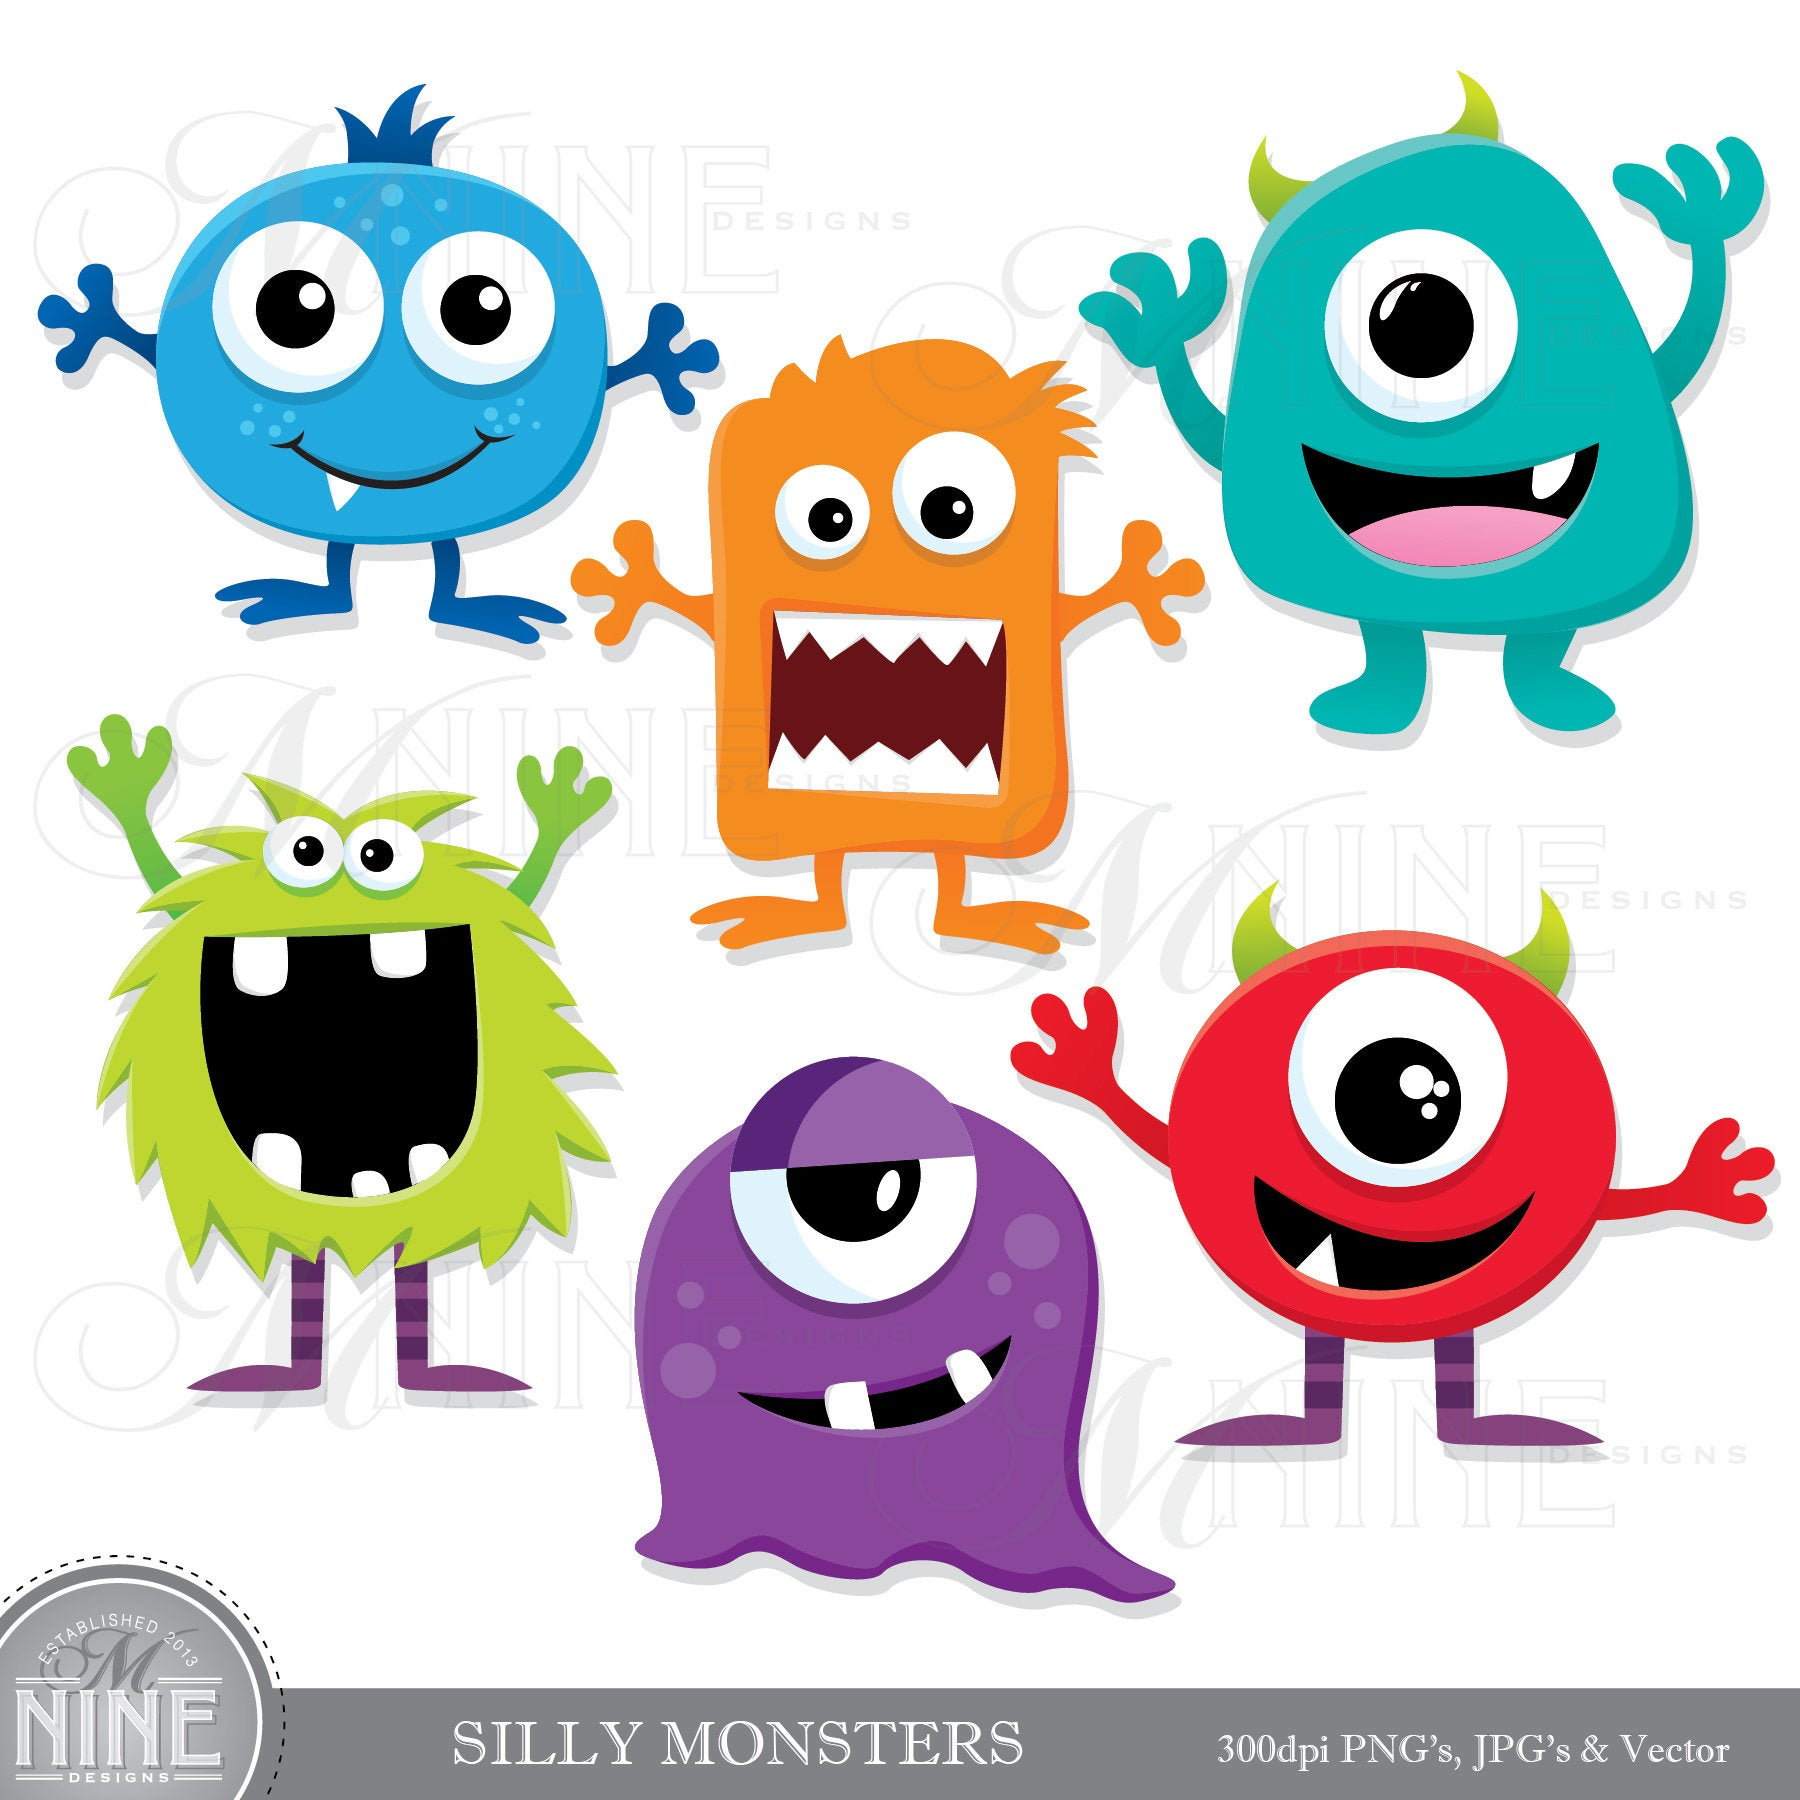 SILLY MONSTERS Clip Art / Monster Clipart Downloads / Monster Party,  Monsters Theme, Monsters Scrapbook Clipart, Vector Monsters.